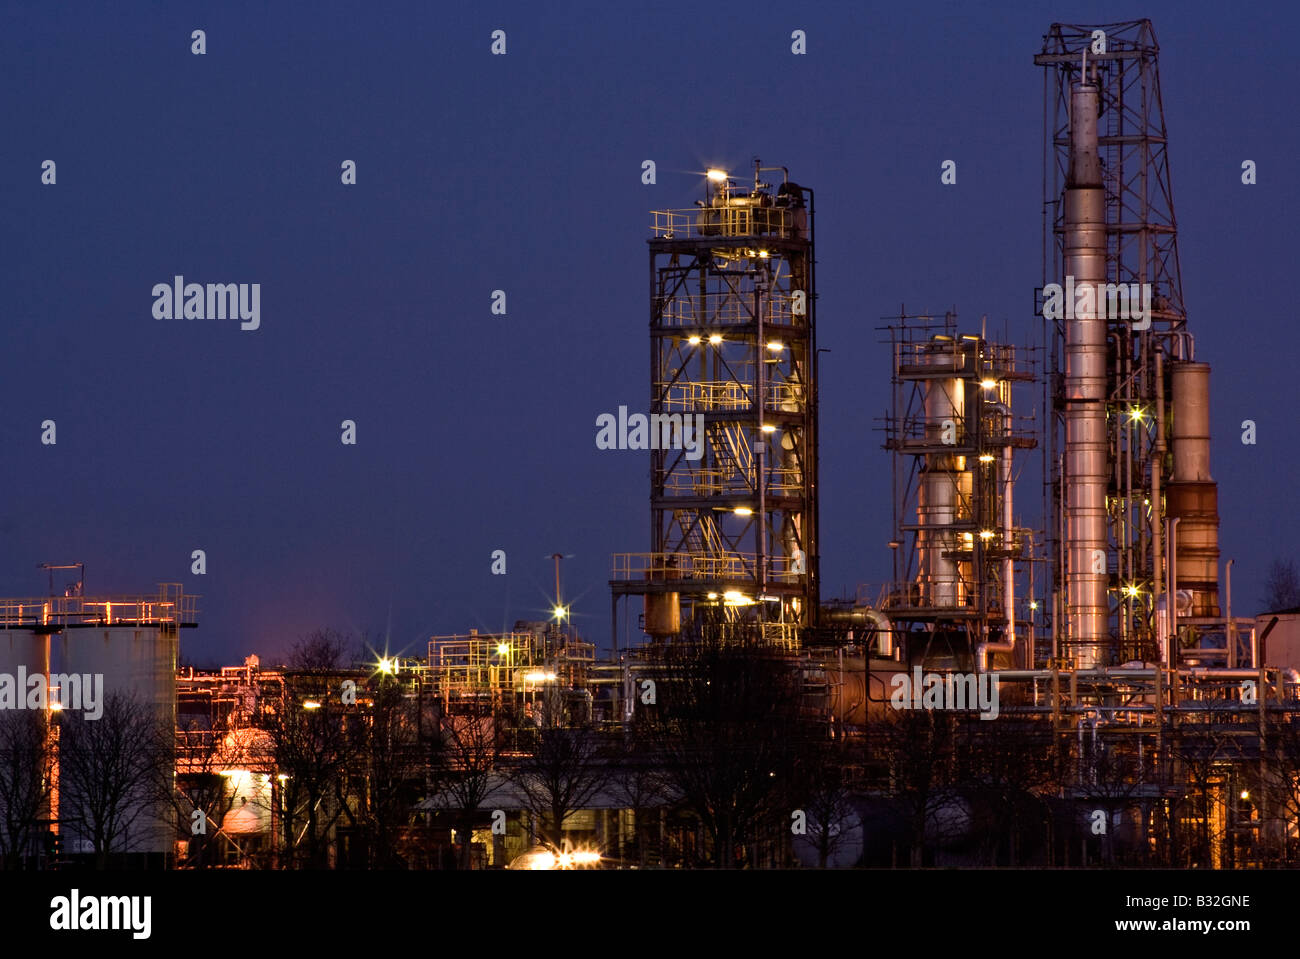 chemical works lit up at night - Stock Image